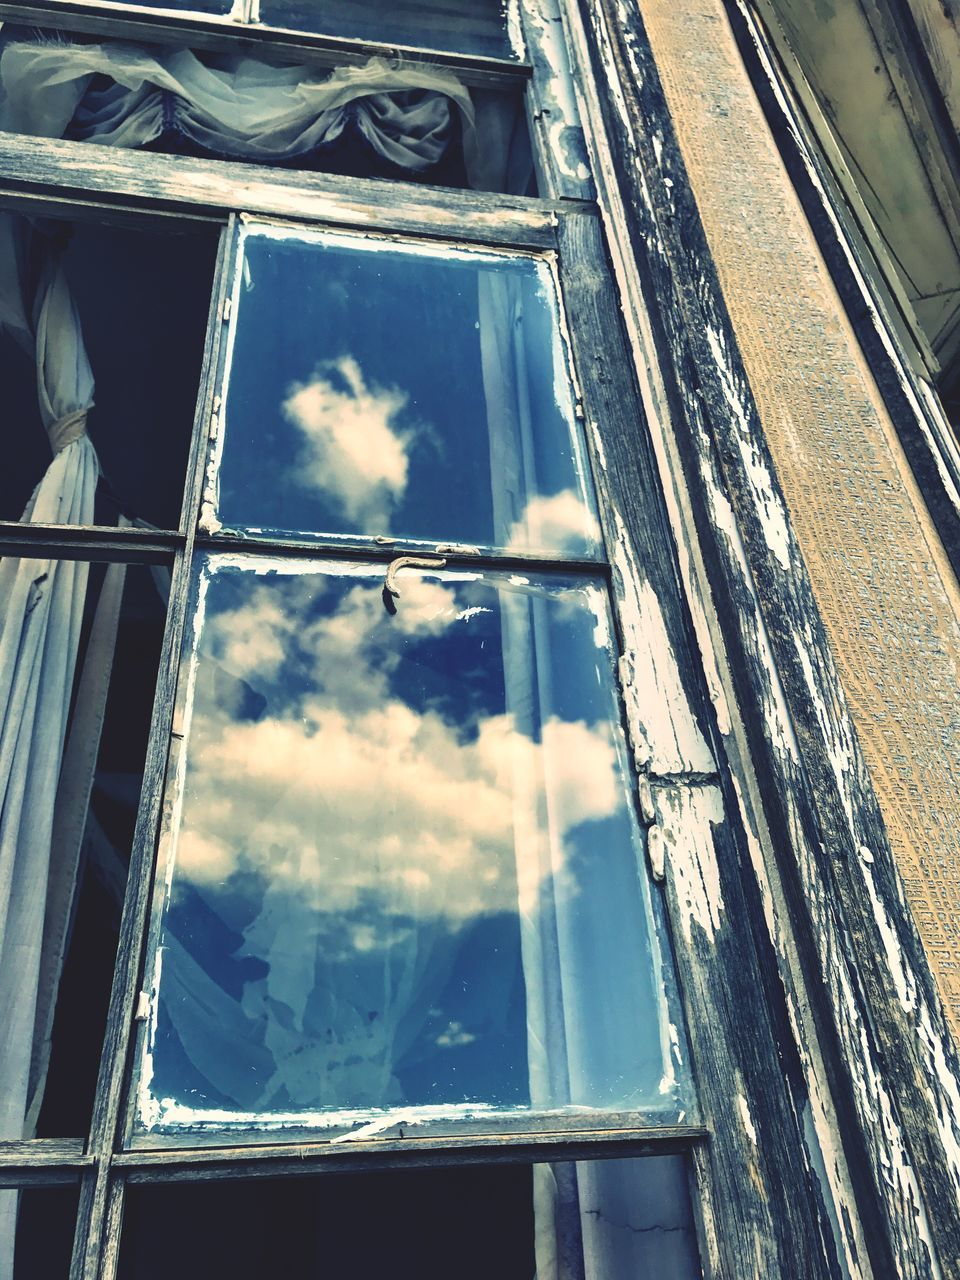 window, no people, day, indoors, close-up, sky